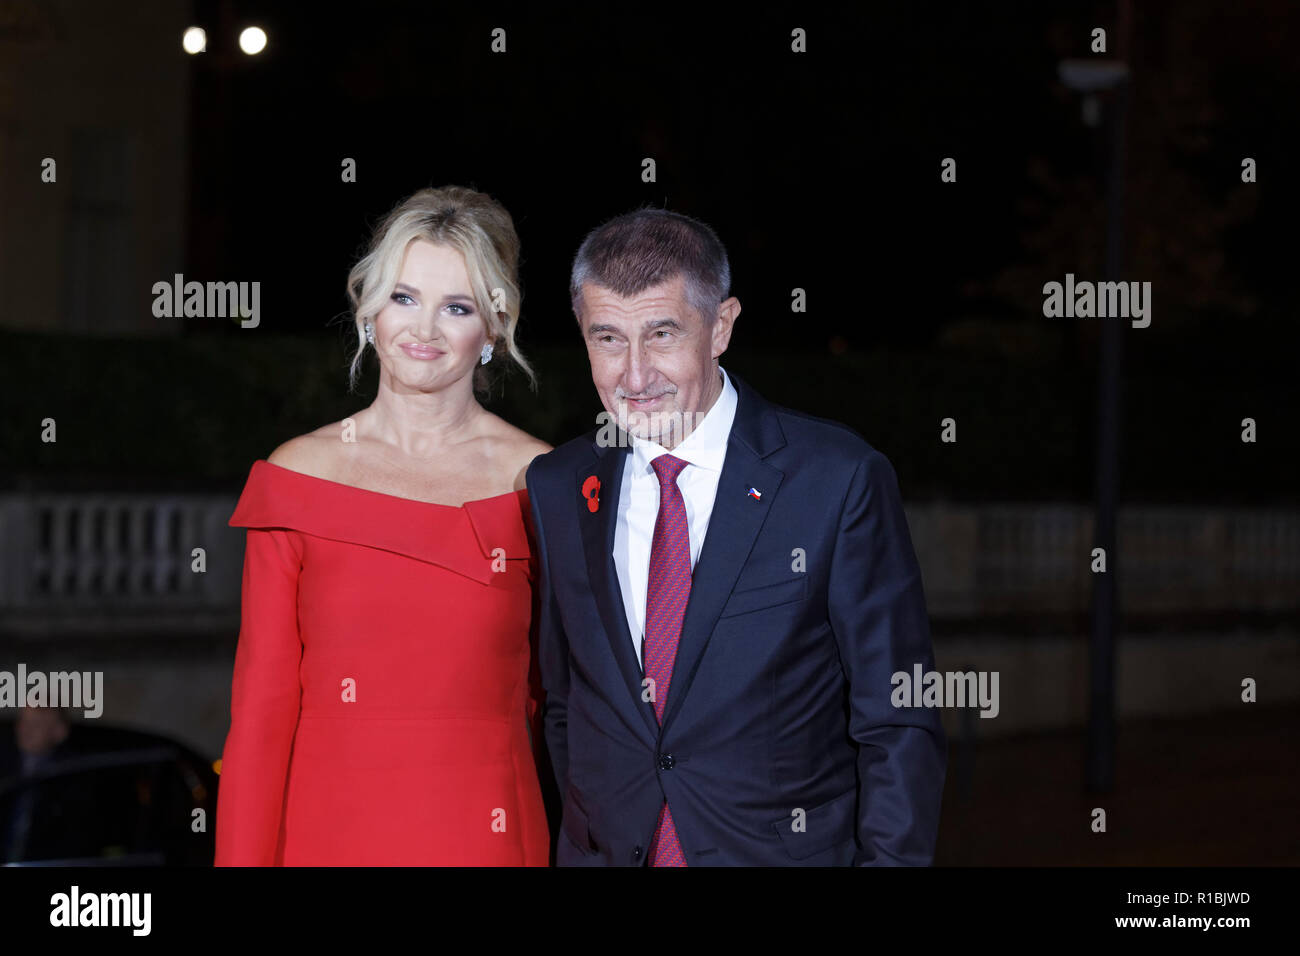 Paris, France. 10th Nov, 2018. Arrival of Prime Minister of the Czech Republic Andrej Babis with his wife Monika Babisova  for dinner in the presence of the heads of state, government and international organization leaders during the international commemoration of the centenary of the 1918 armistice at the Musée d'Orsay in Paris on November 10, 2018 in Paris, France. Credit: Bernard Menigault/Alamy Live News - Stock Image